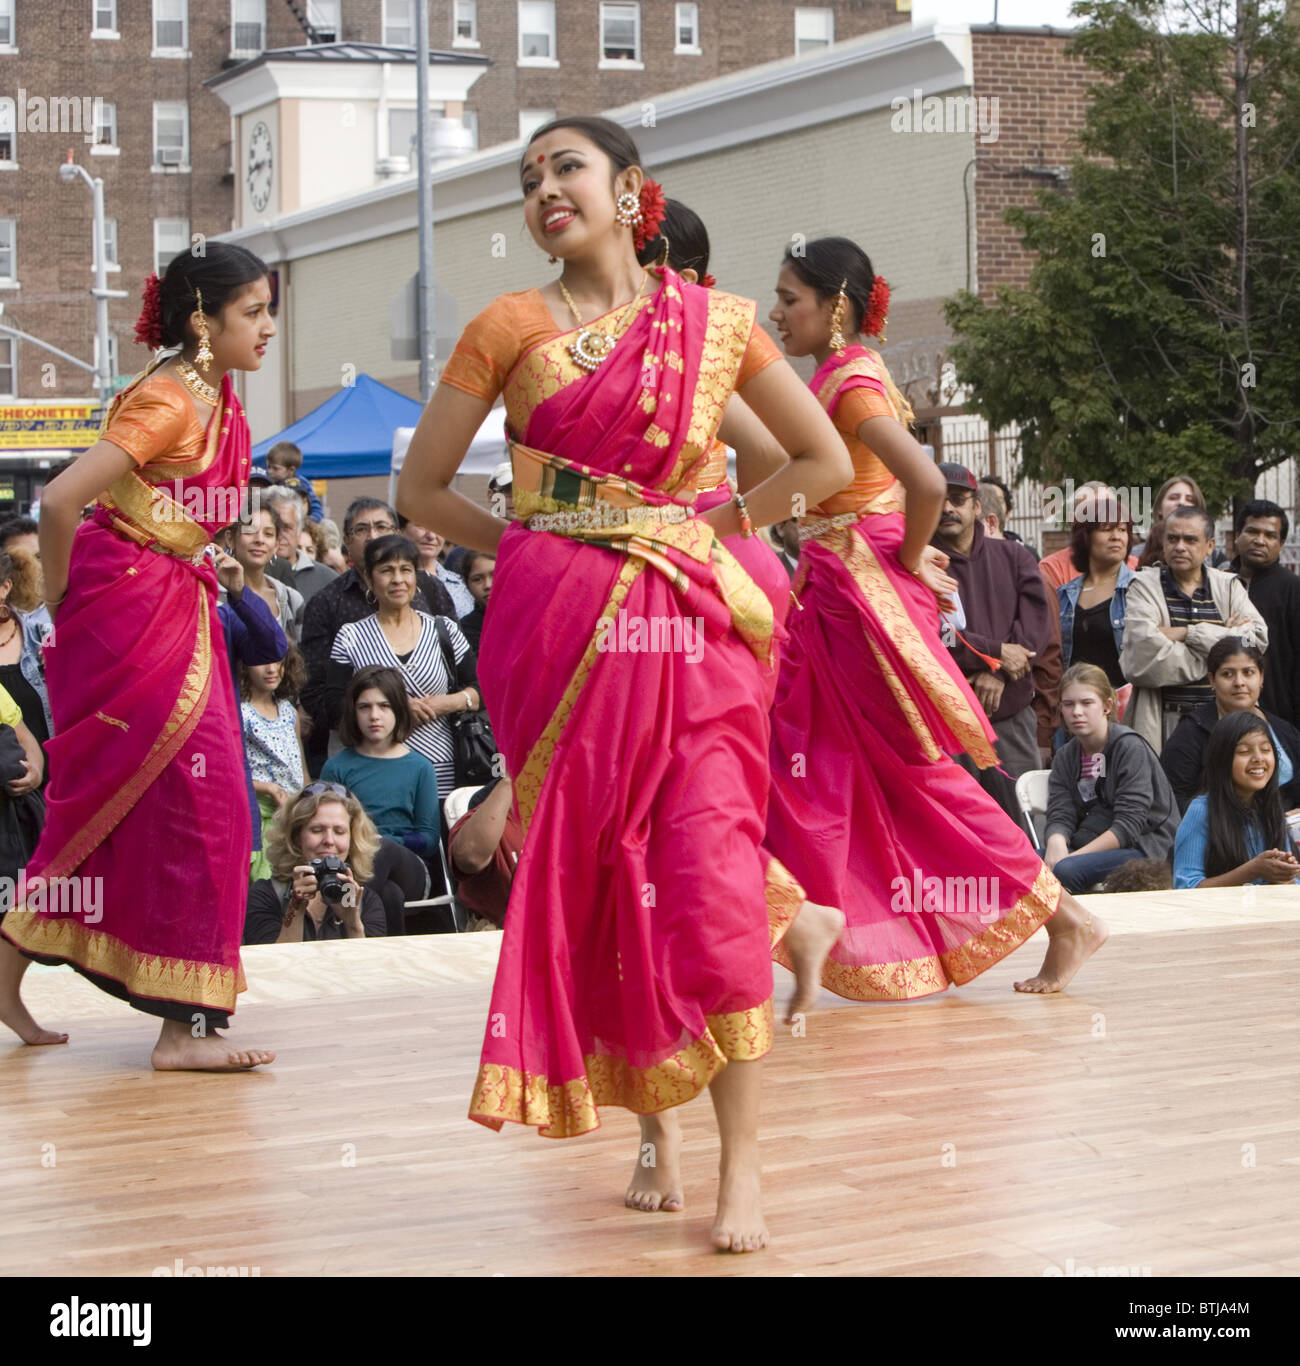 Américain bangladais performance group effectue lors d'un festival des cultures du monde à Brooklyn, Photo Stock